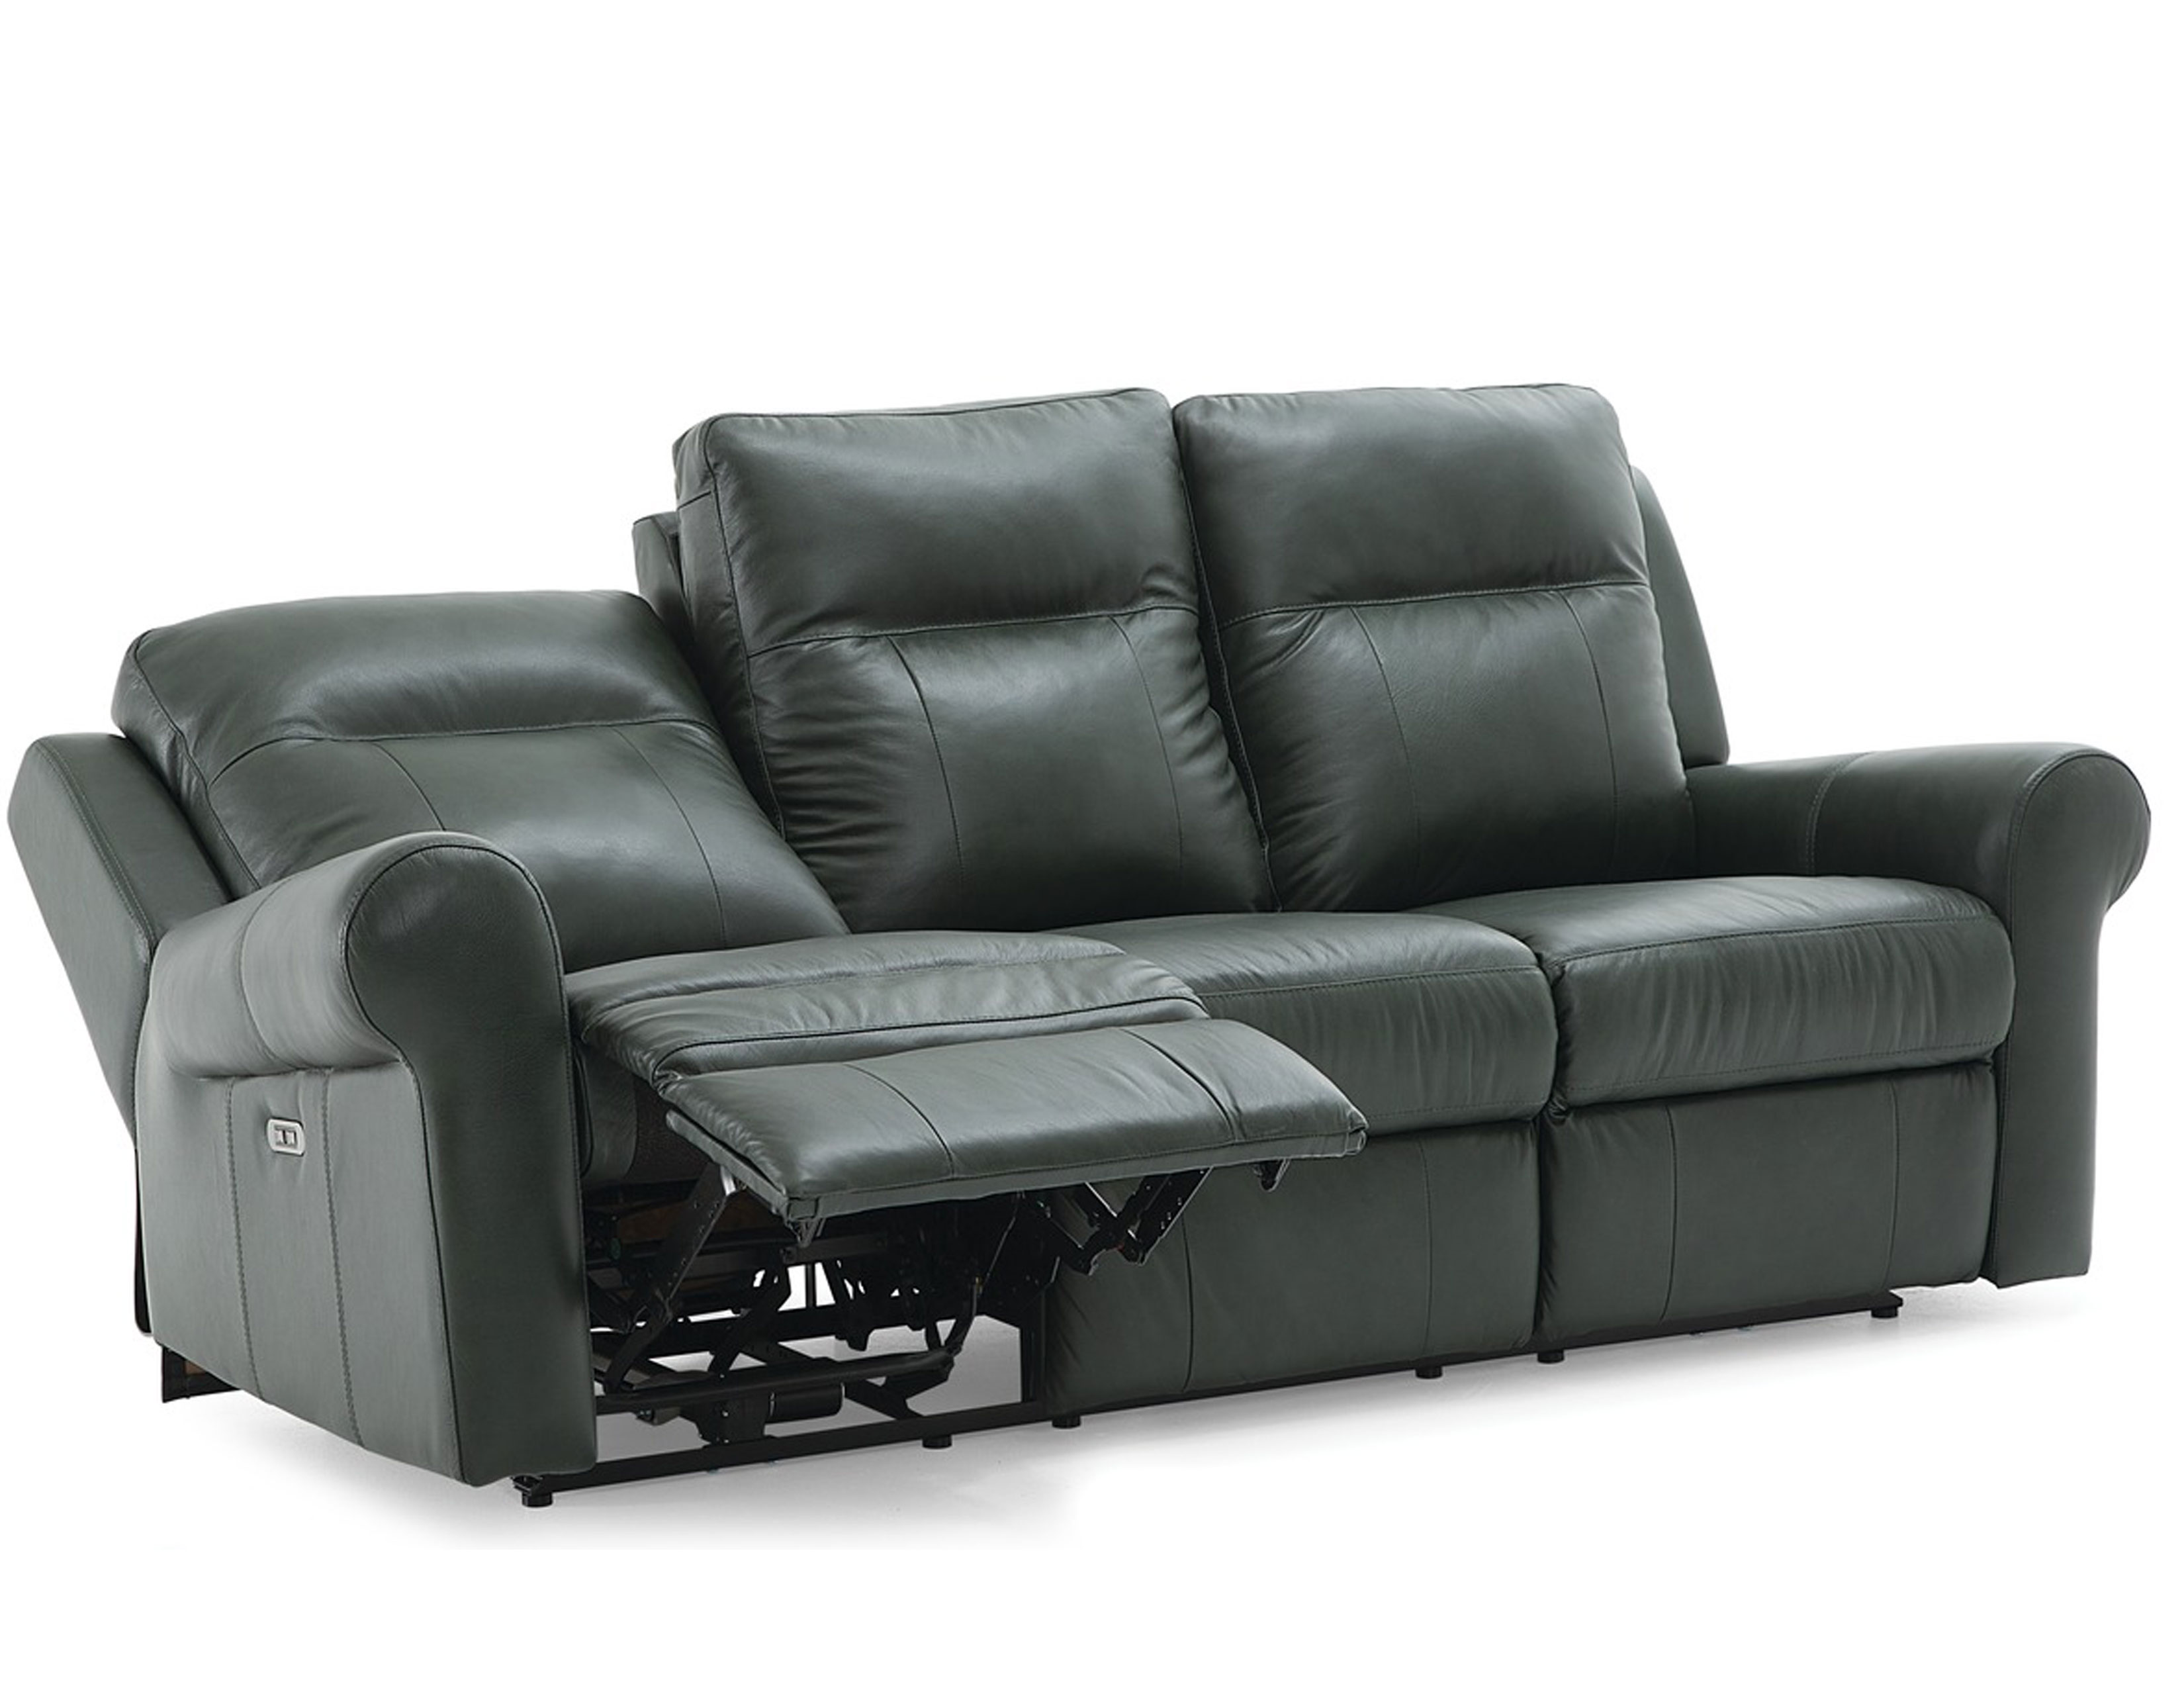 Remarkable Vega Power Reclining Sofa W Power Headrest Sofas And Beatyapartments Chair Design Images Beatyapartmentscom